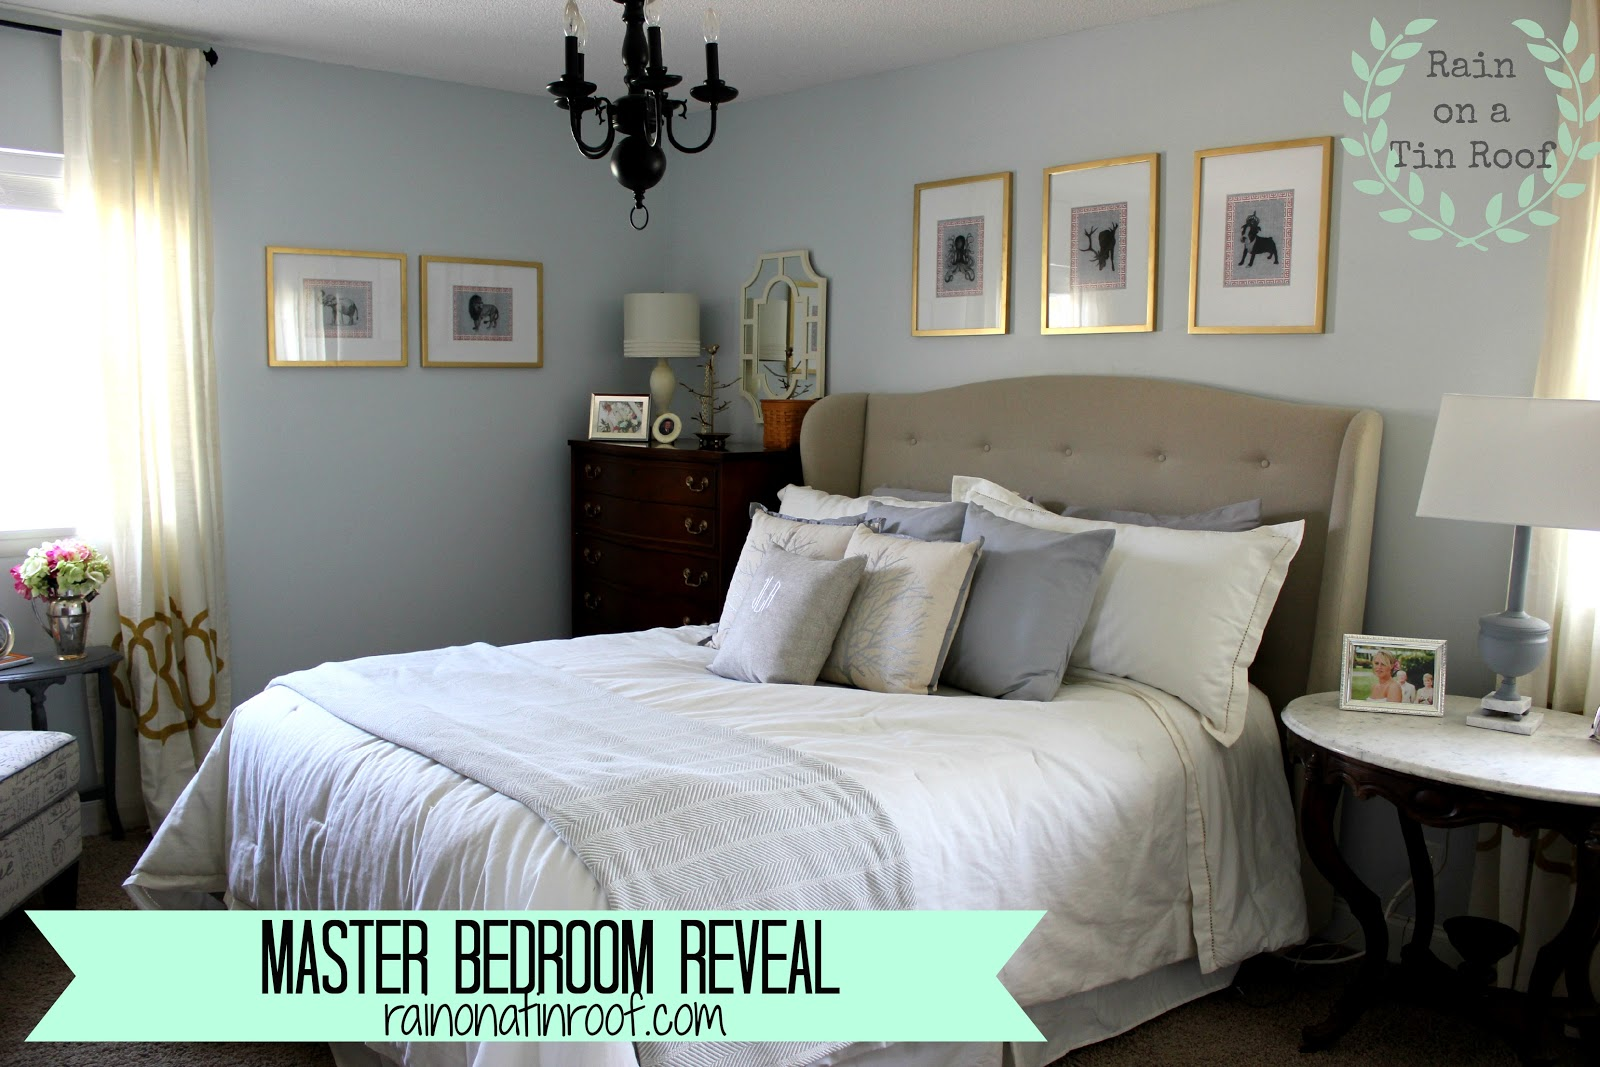 Master Bedroom Makeover Reveal {rainonatinroof.com} #masterbedroom  #makeover #reveal #